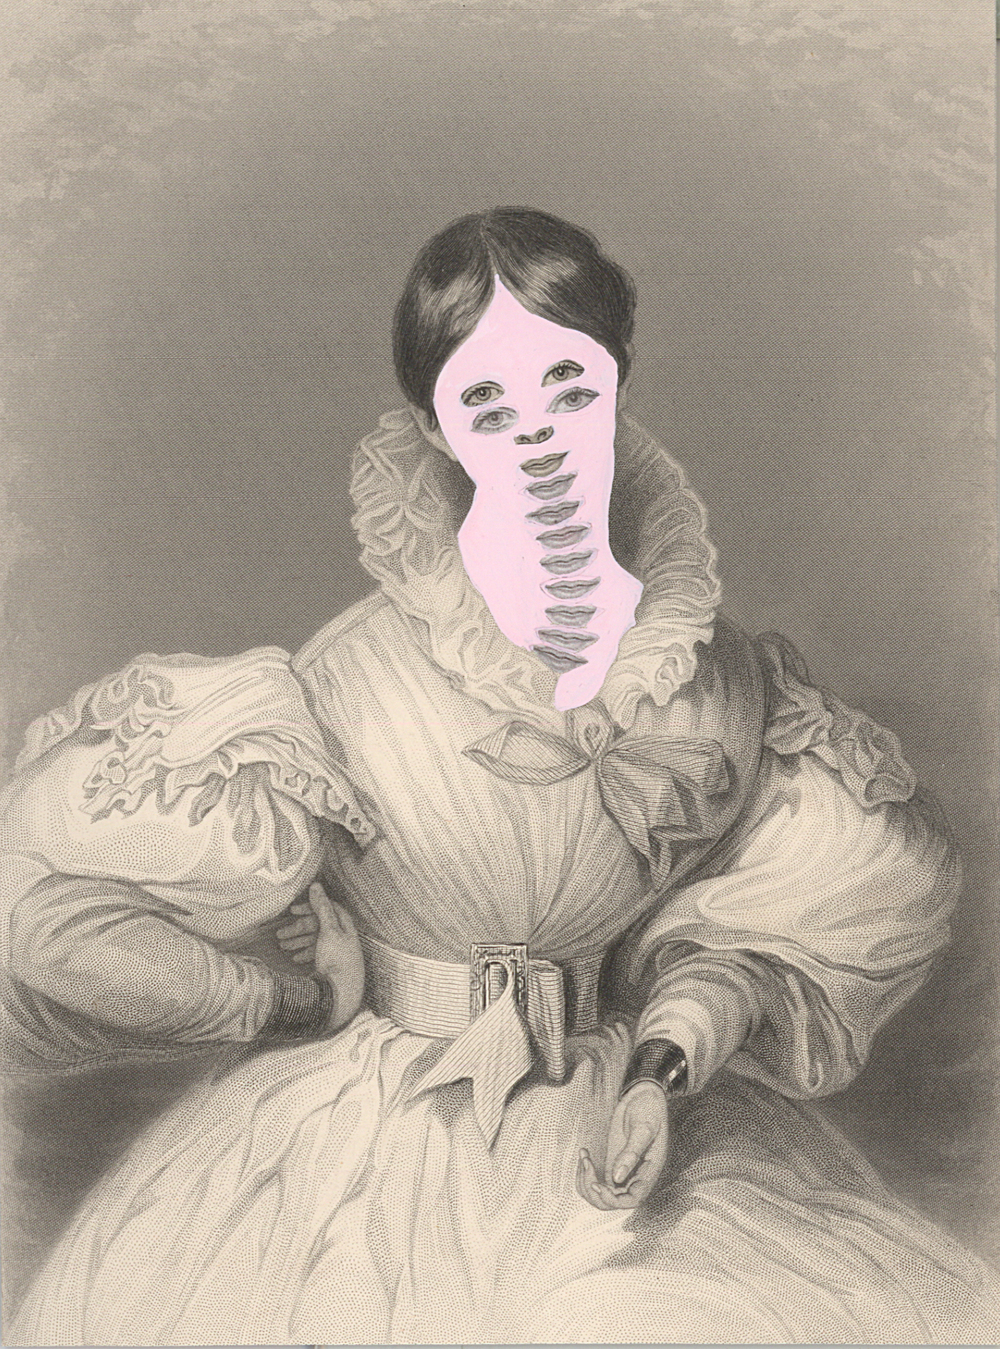 "Mrs. John Goldsmith 1861/2014 , gouache and collage on 19th century engraving, 7.5"" x 5"", 2014"